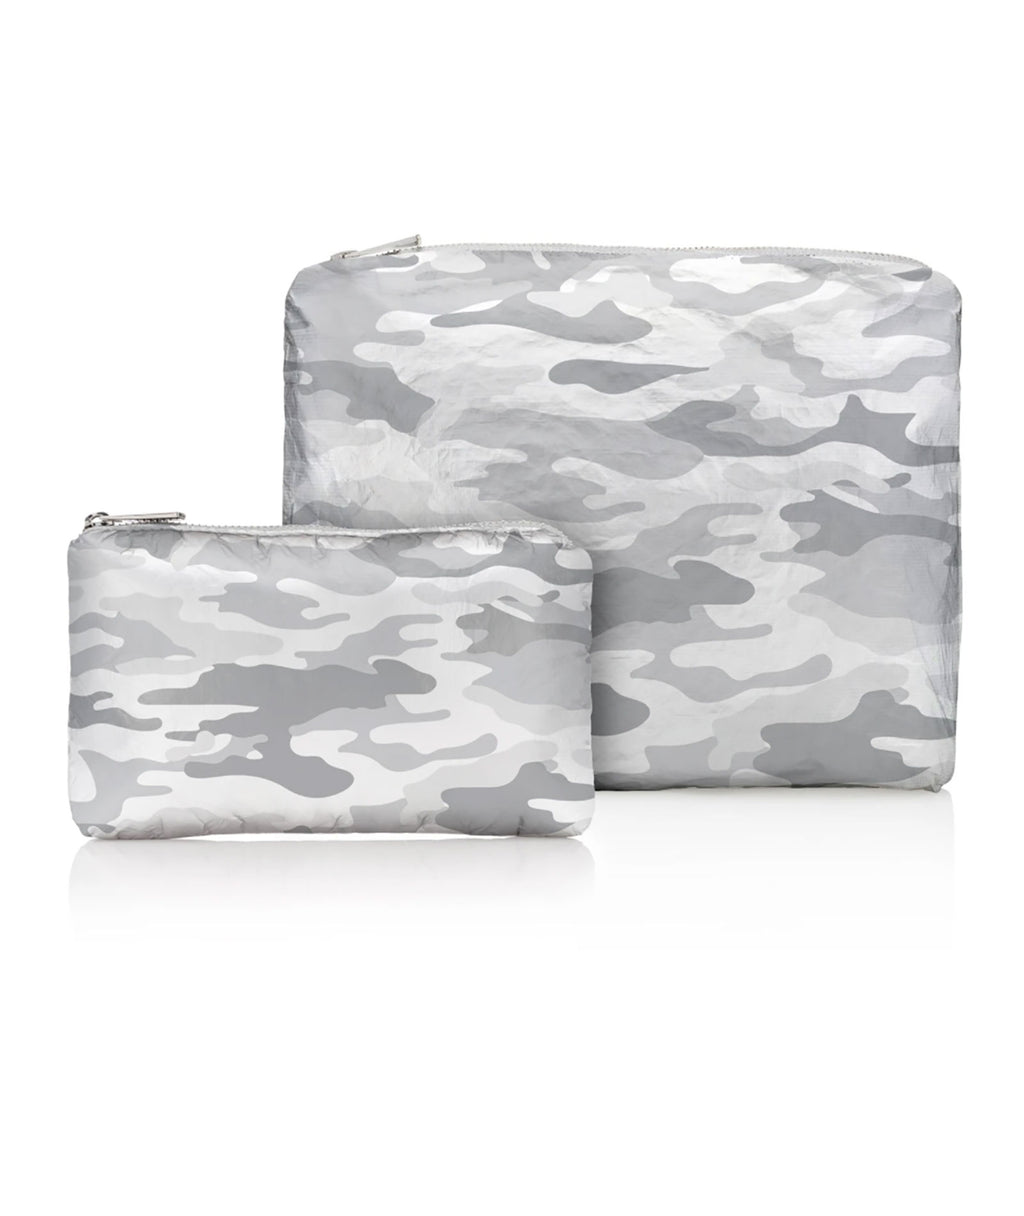 HI Love Travel Two Pack Silver Camo